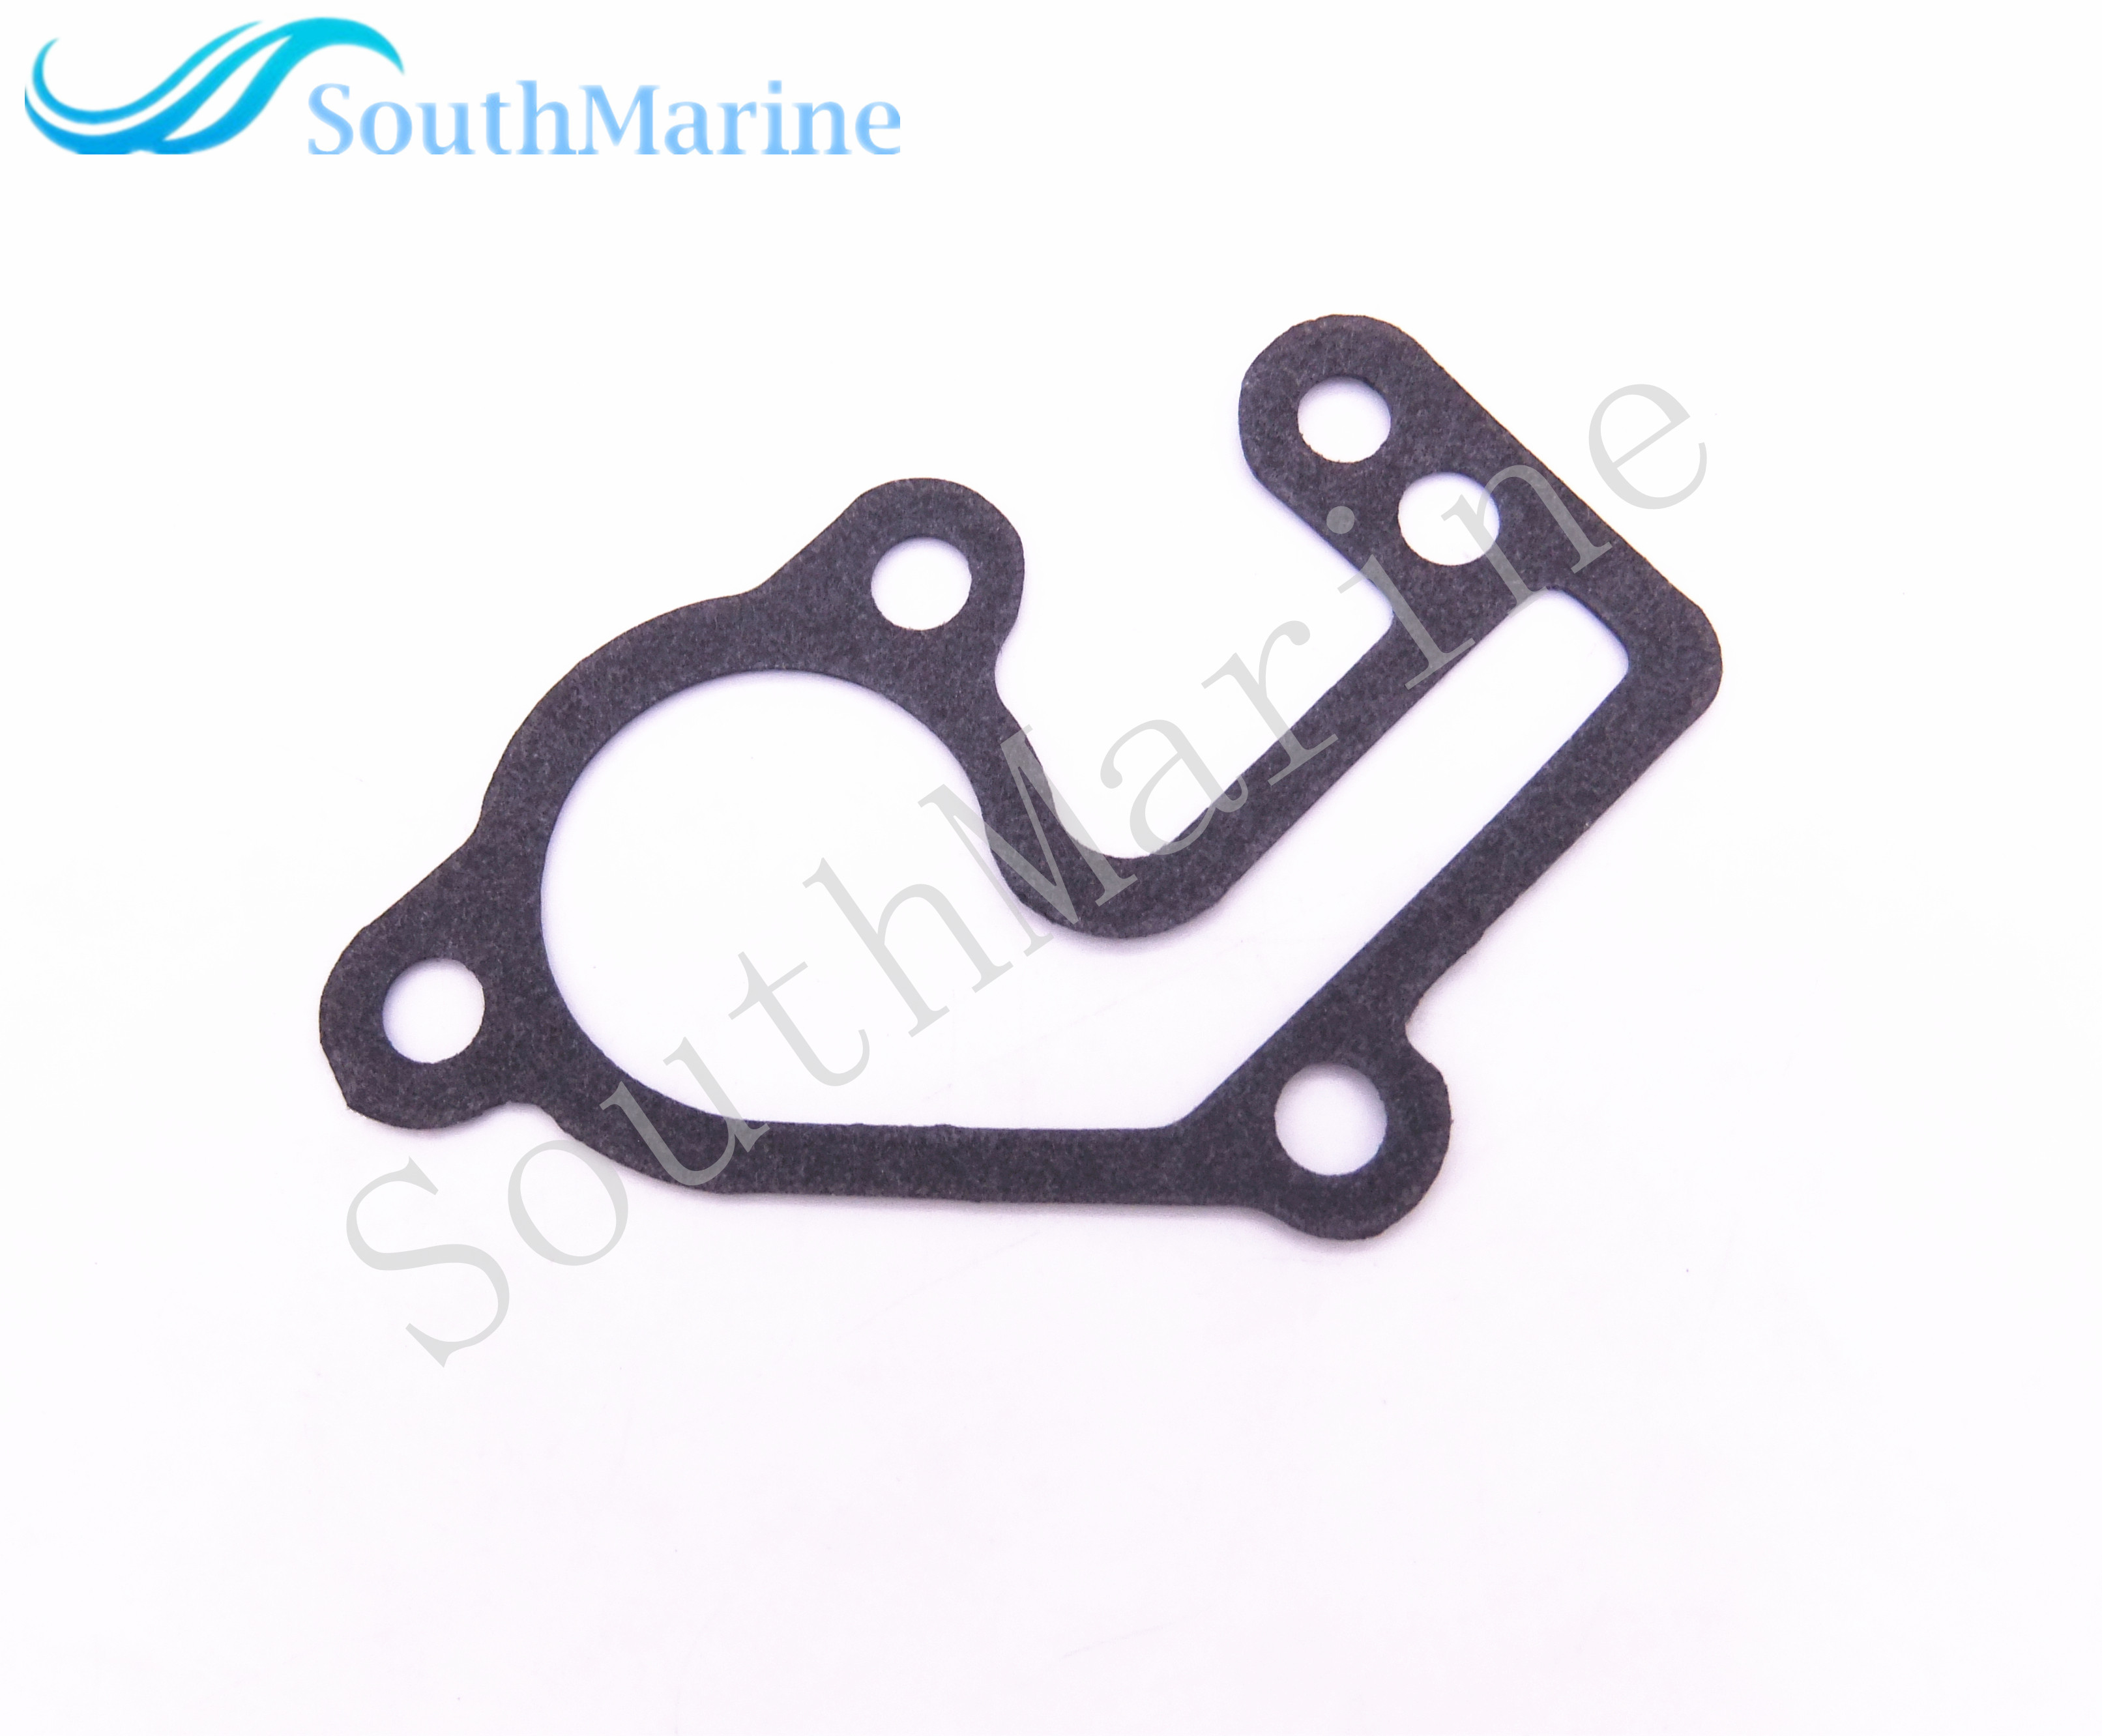 Outboard Engine 682-12414-A1 Thermostat Cover Gasket for Yamaha 2-Stroke 9.9hp 15hp 15F Boat Motor Free Shipping